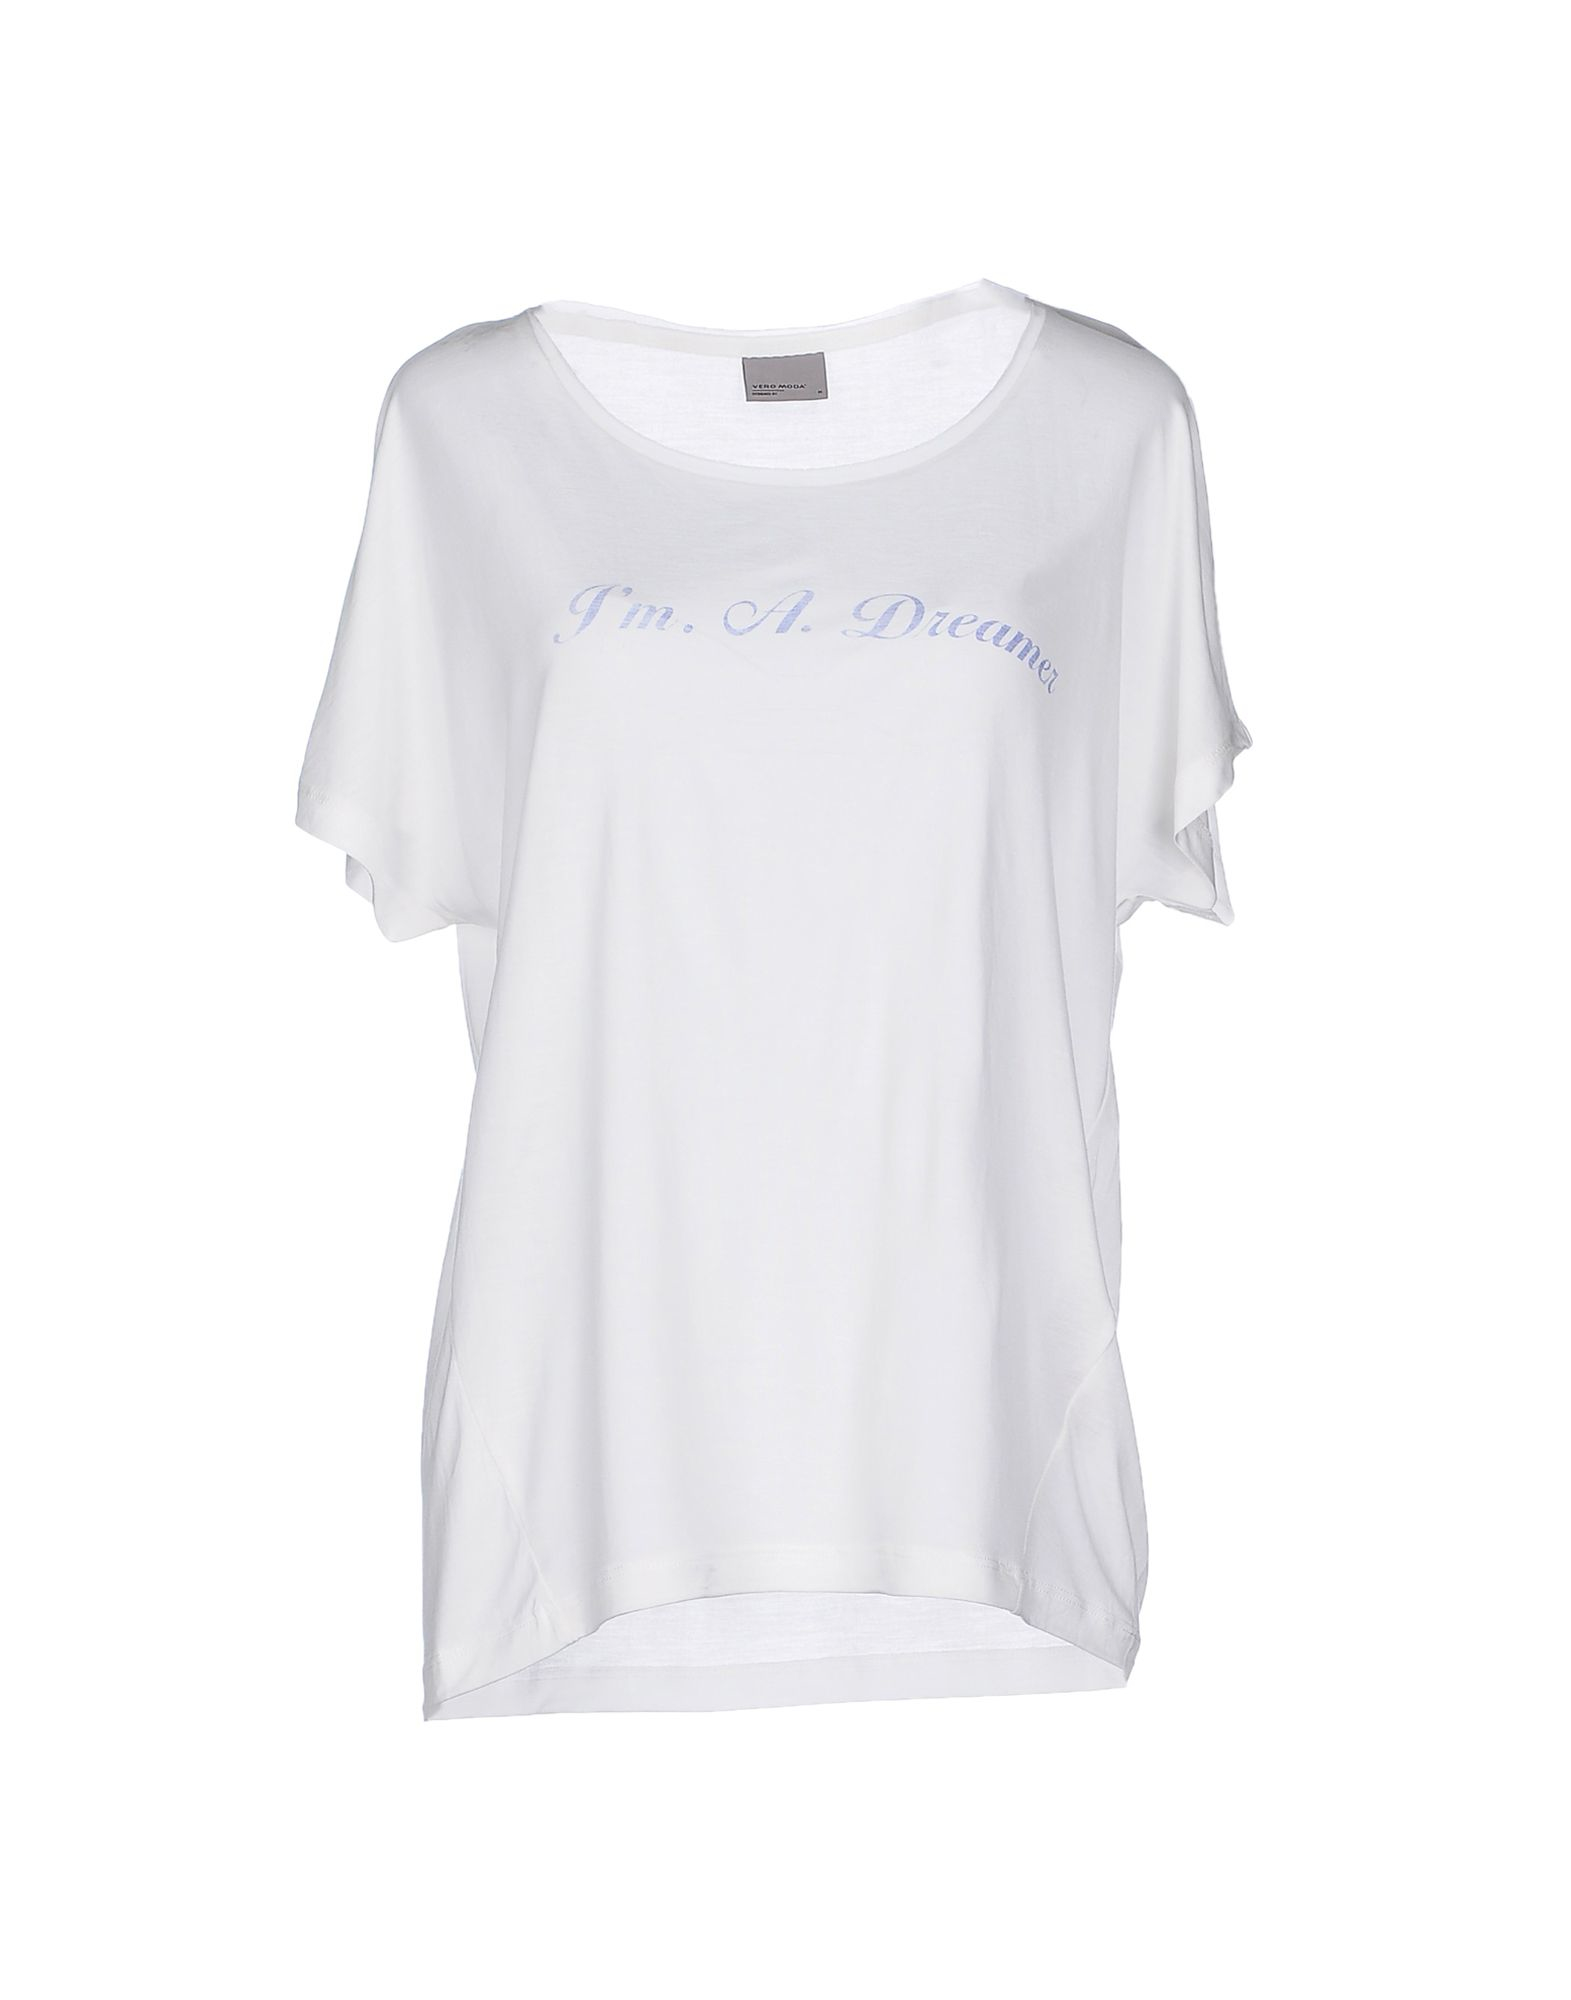 vero moda t shirt in white lyst. Black Bedroom Furniture Sets. Home Design Ideas